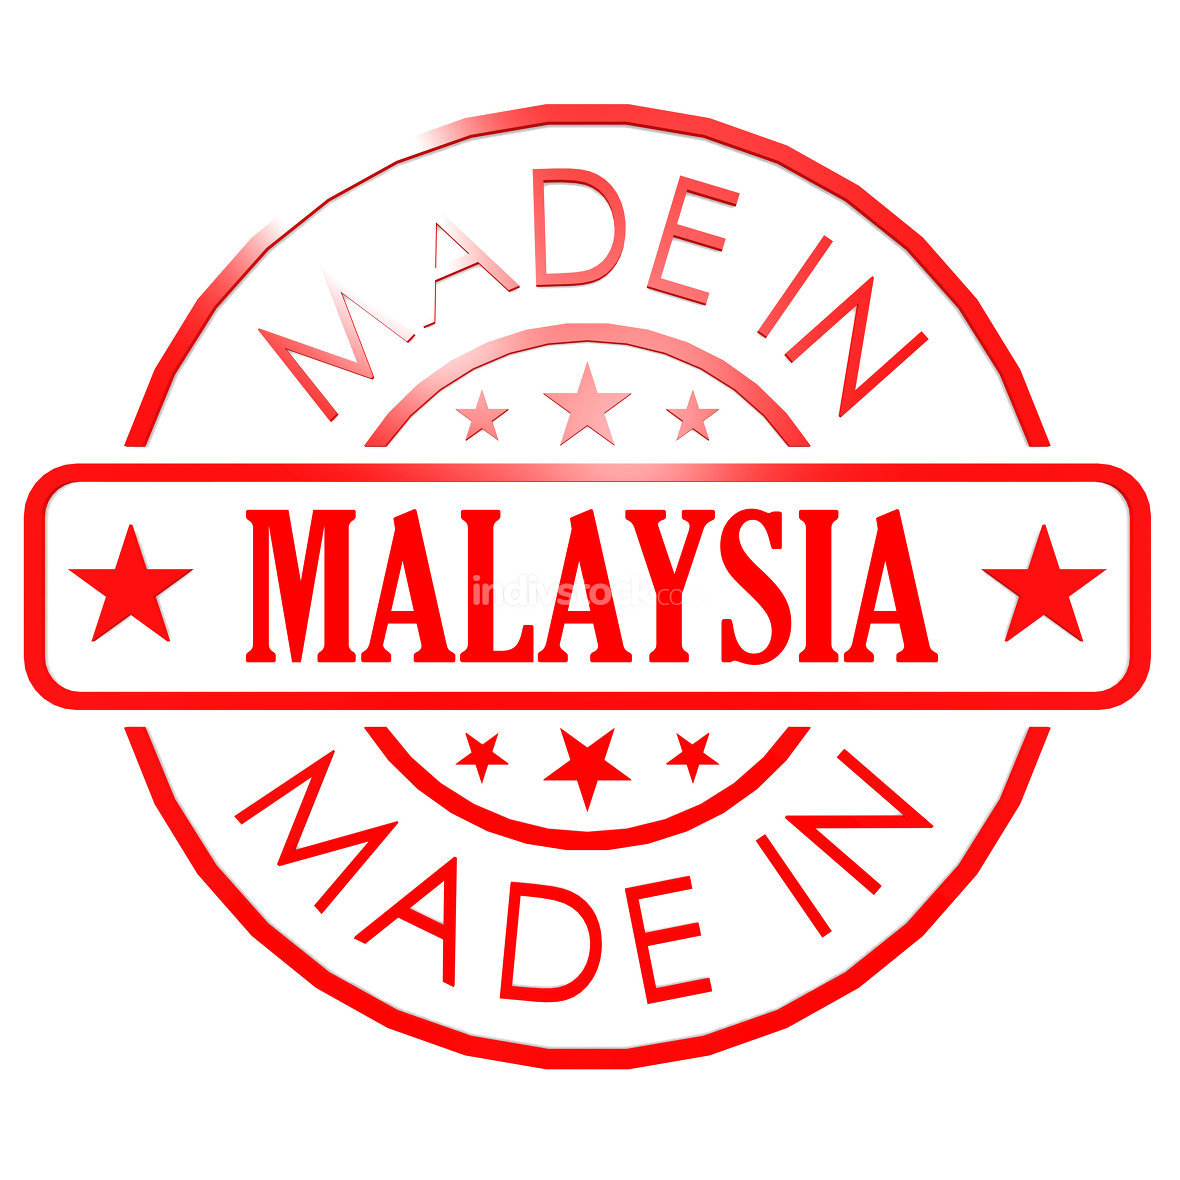 Made in Malaysia red seal